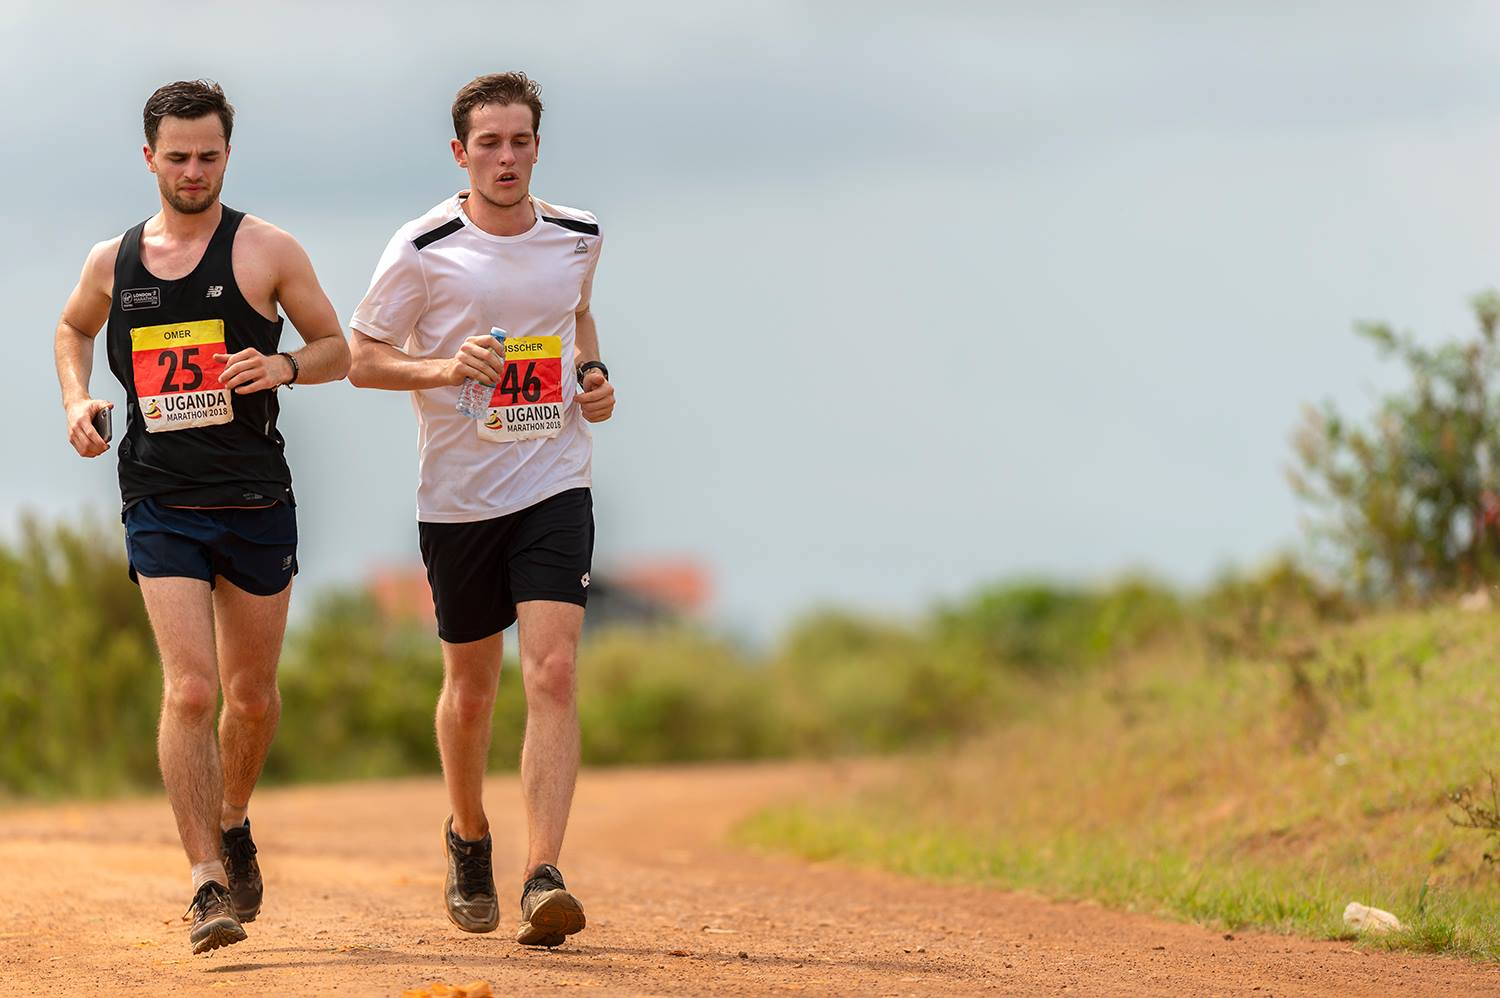 Interview with a UGM Runner – Mitchell Omer